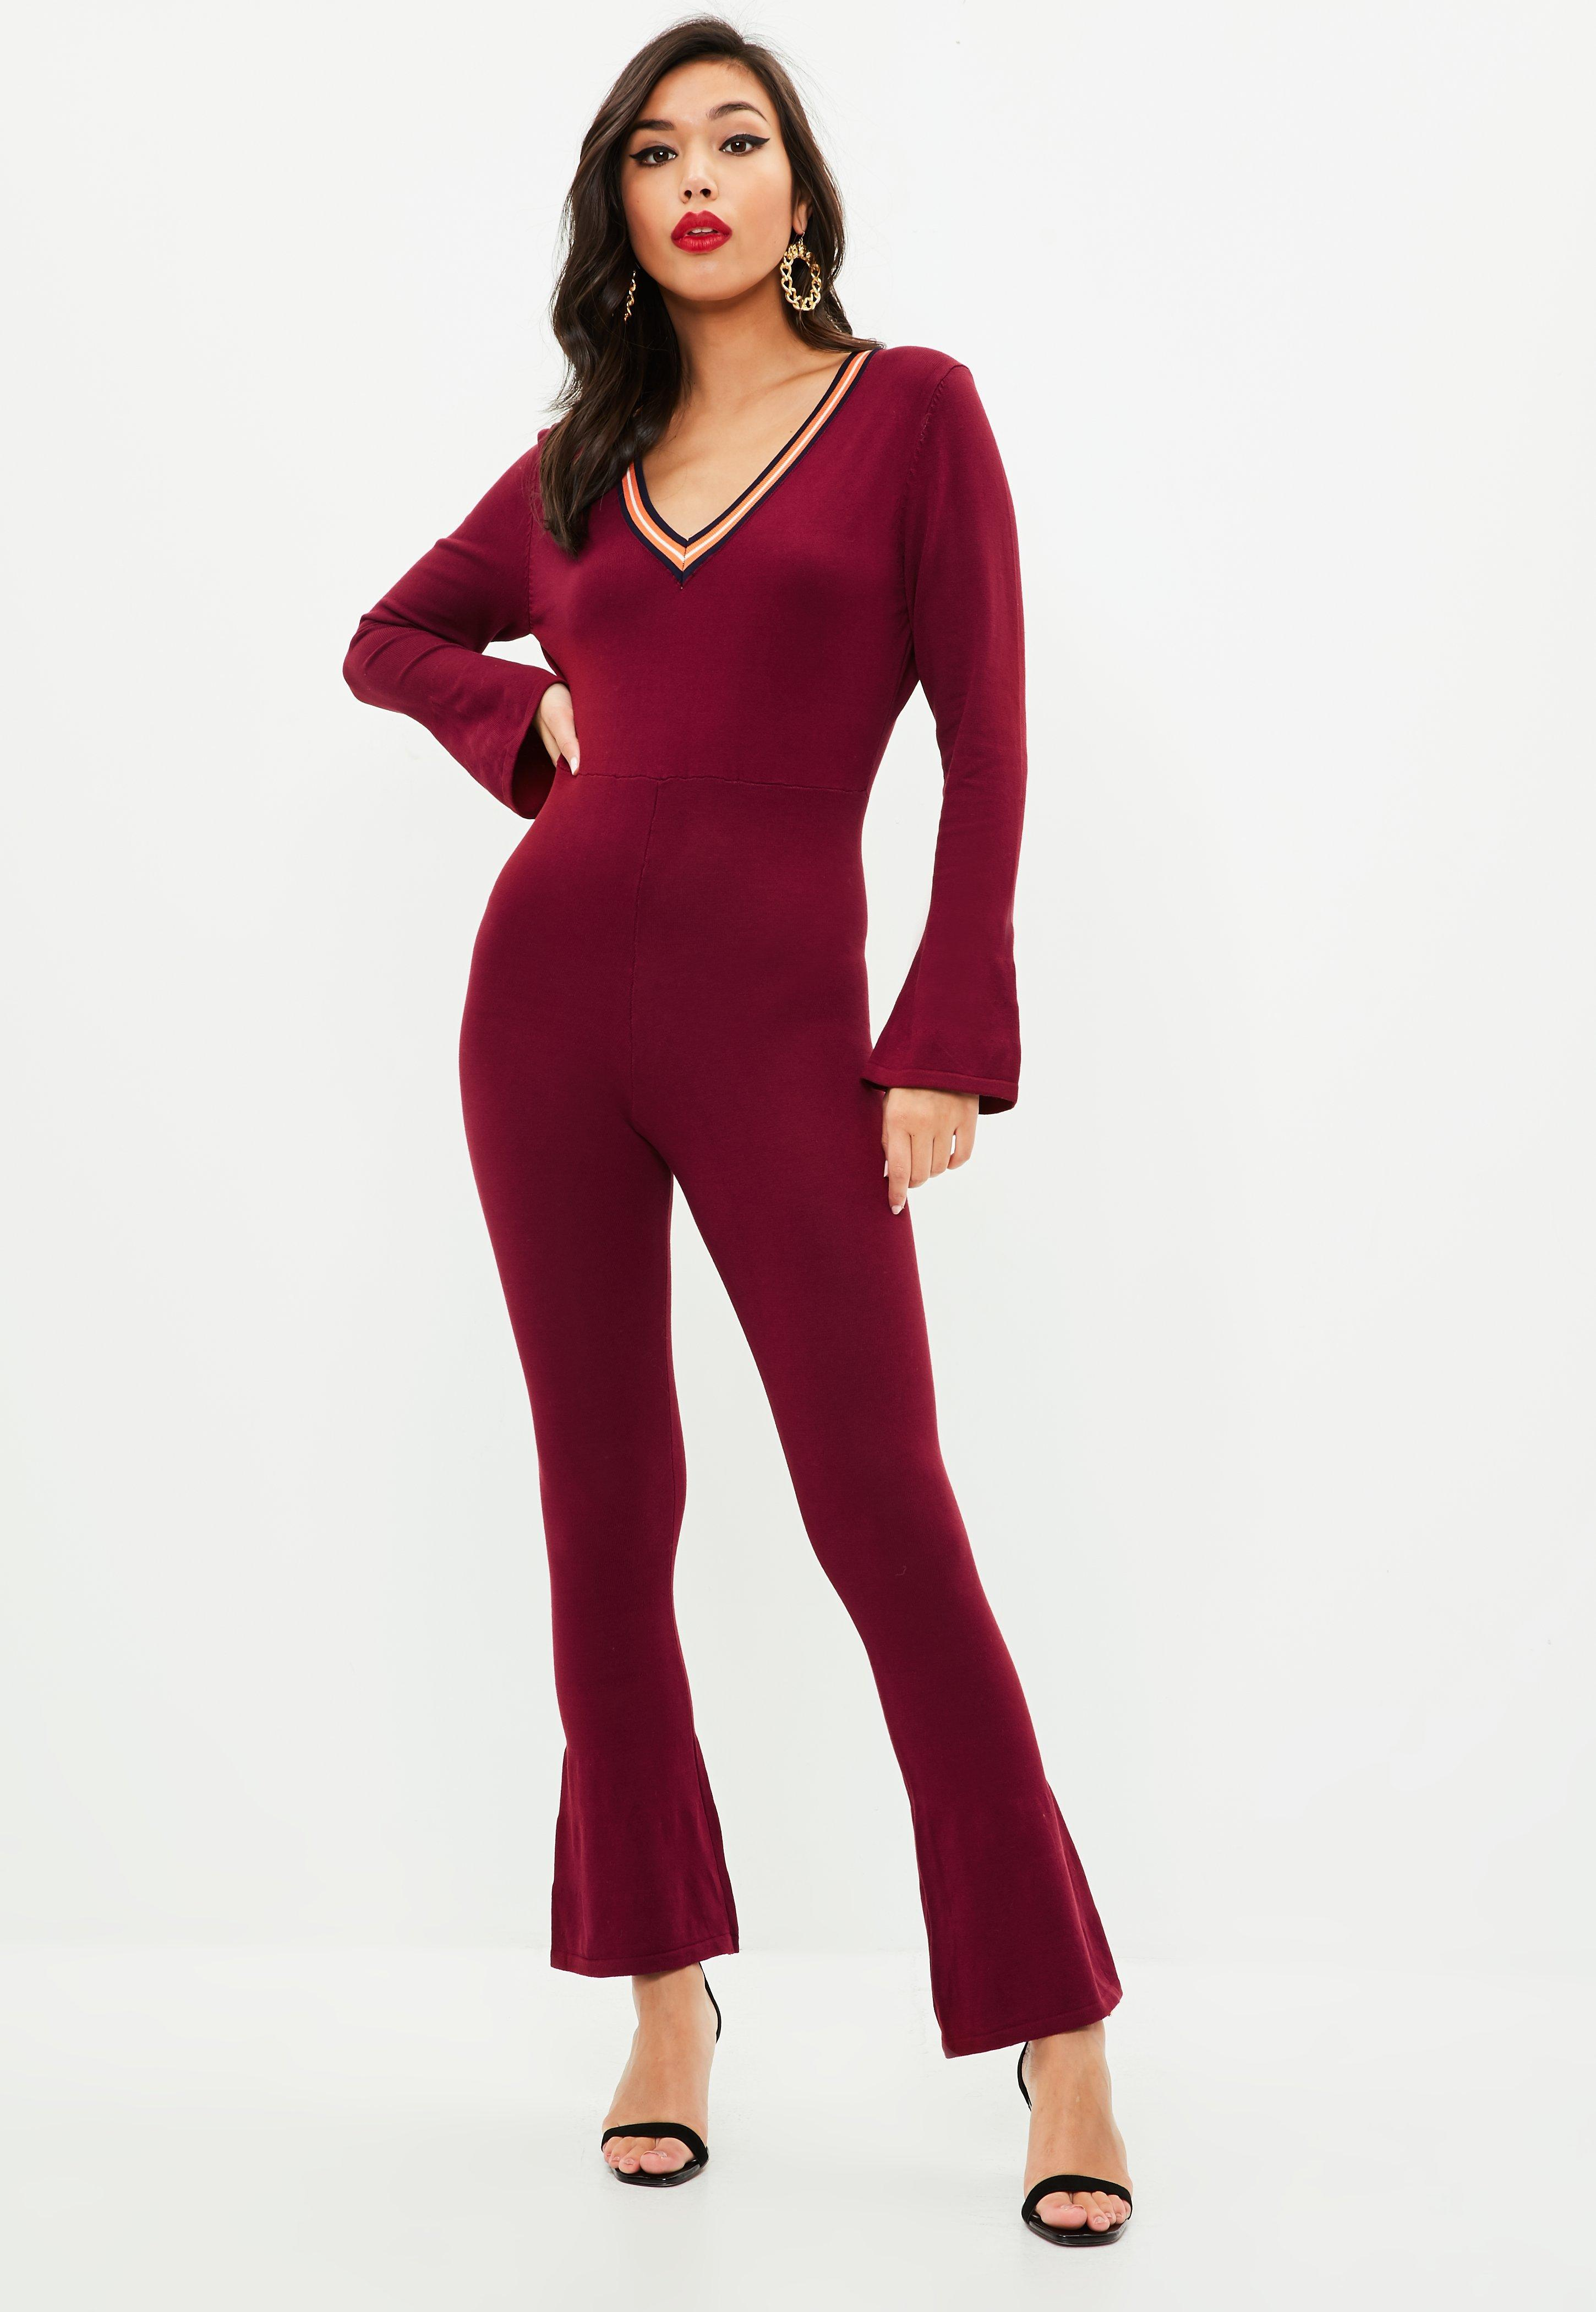 39cbf86ae61 Missguided Burgundy Knitted Stripe Jumpsuit in Red - Lyst